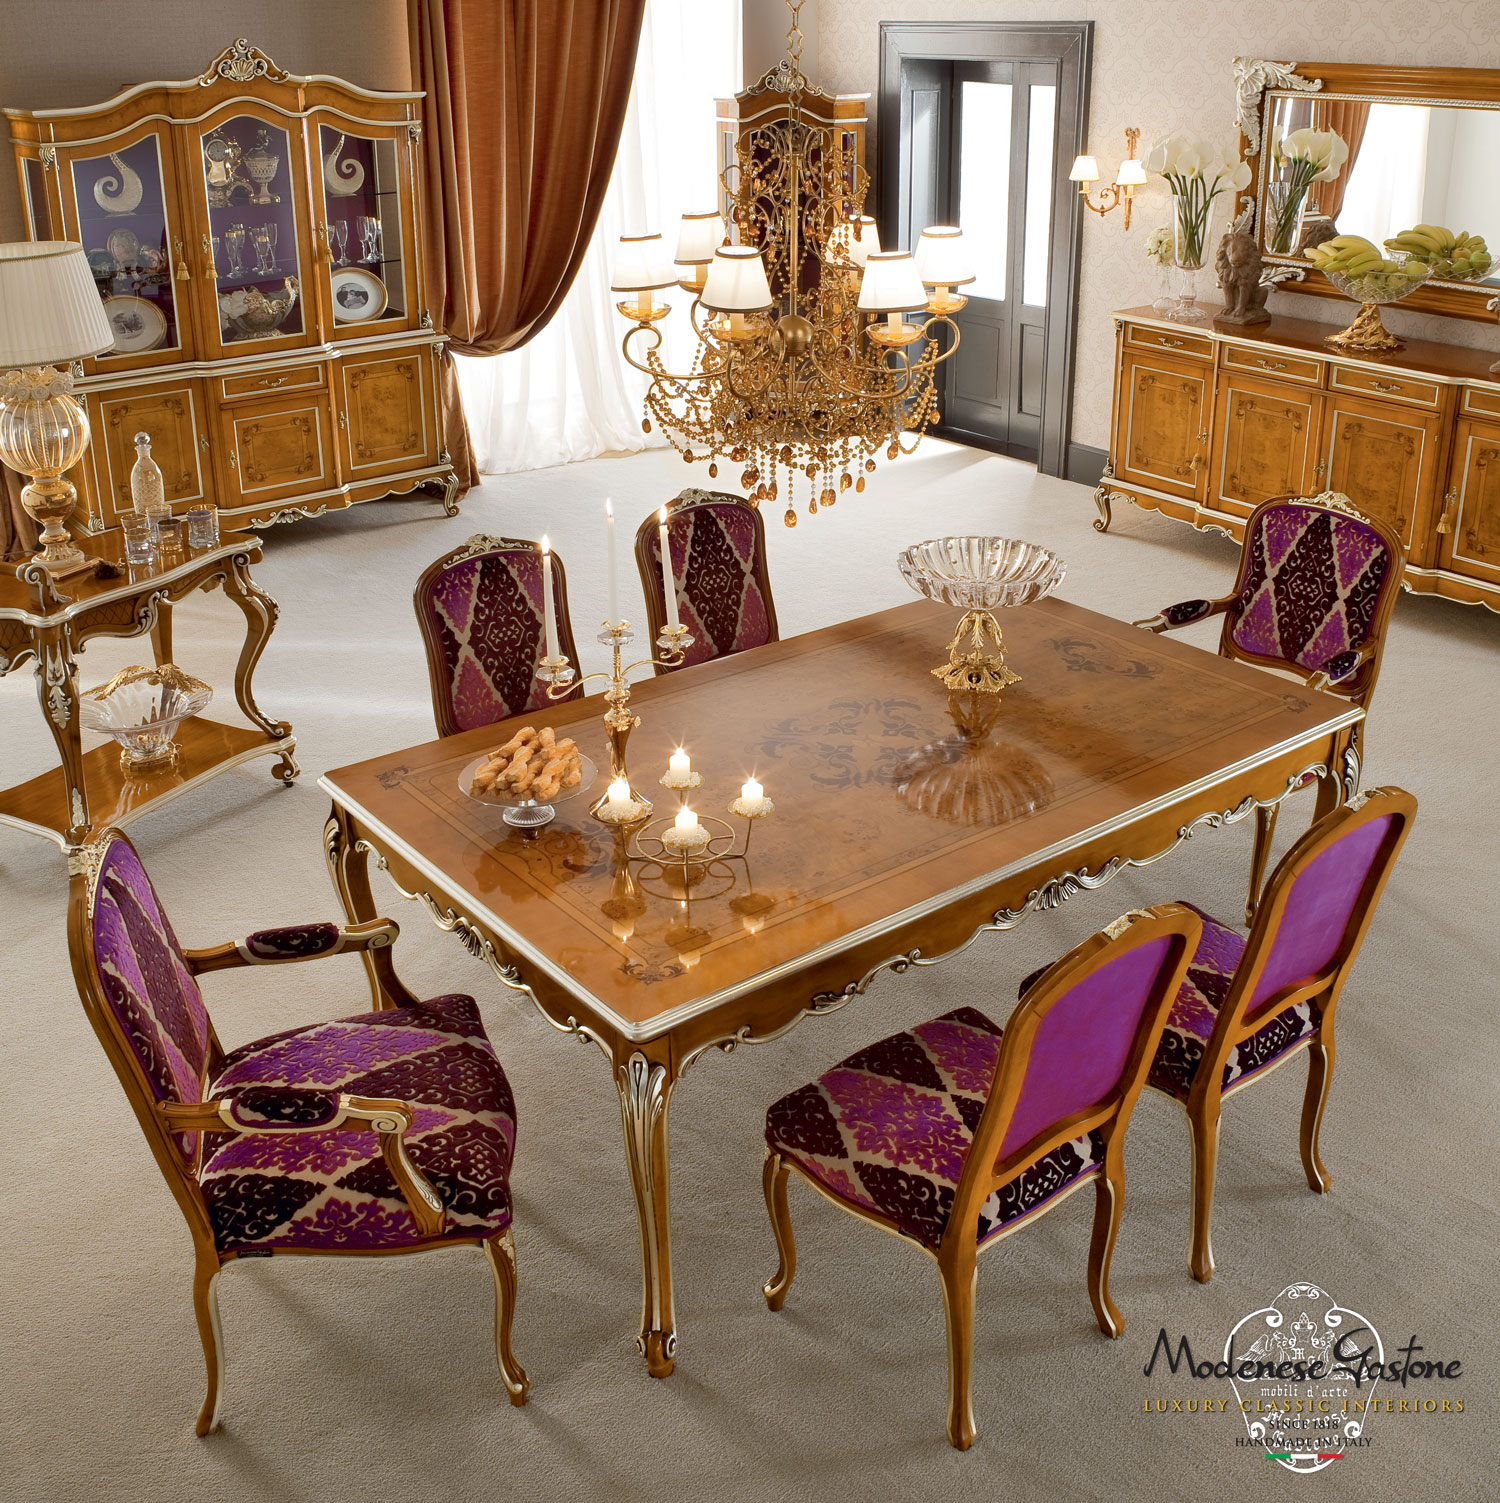 Fashionable-hardwood-customizable-dining-room-Casanova-collection-Modenese-Gastone